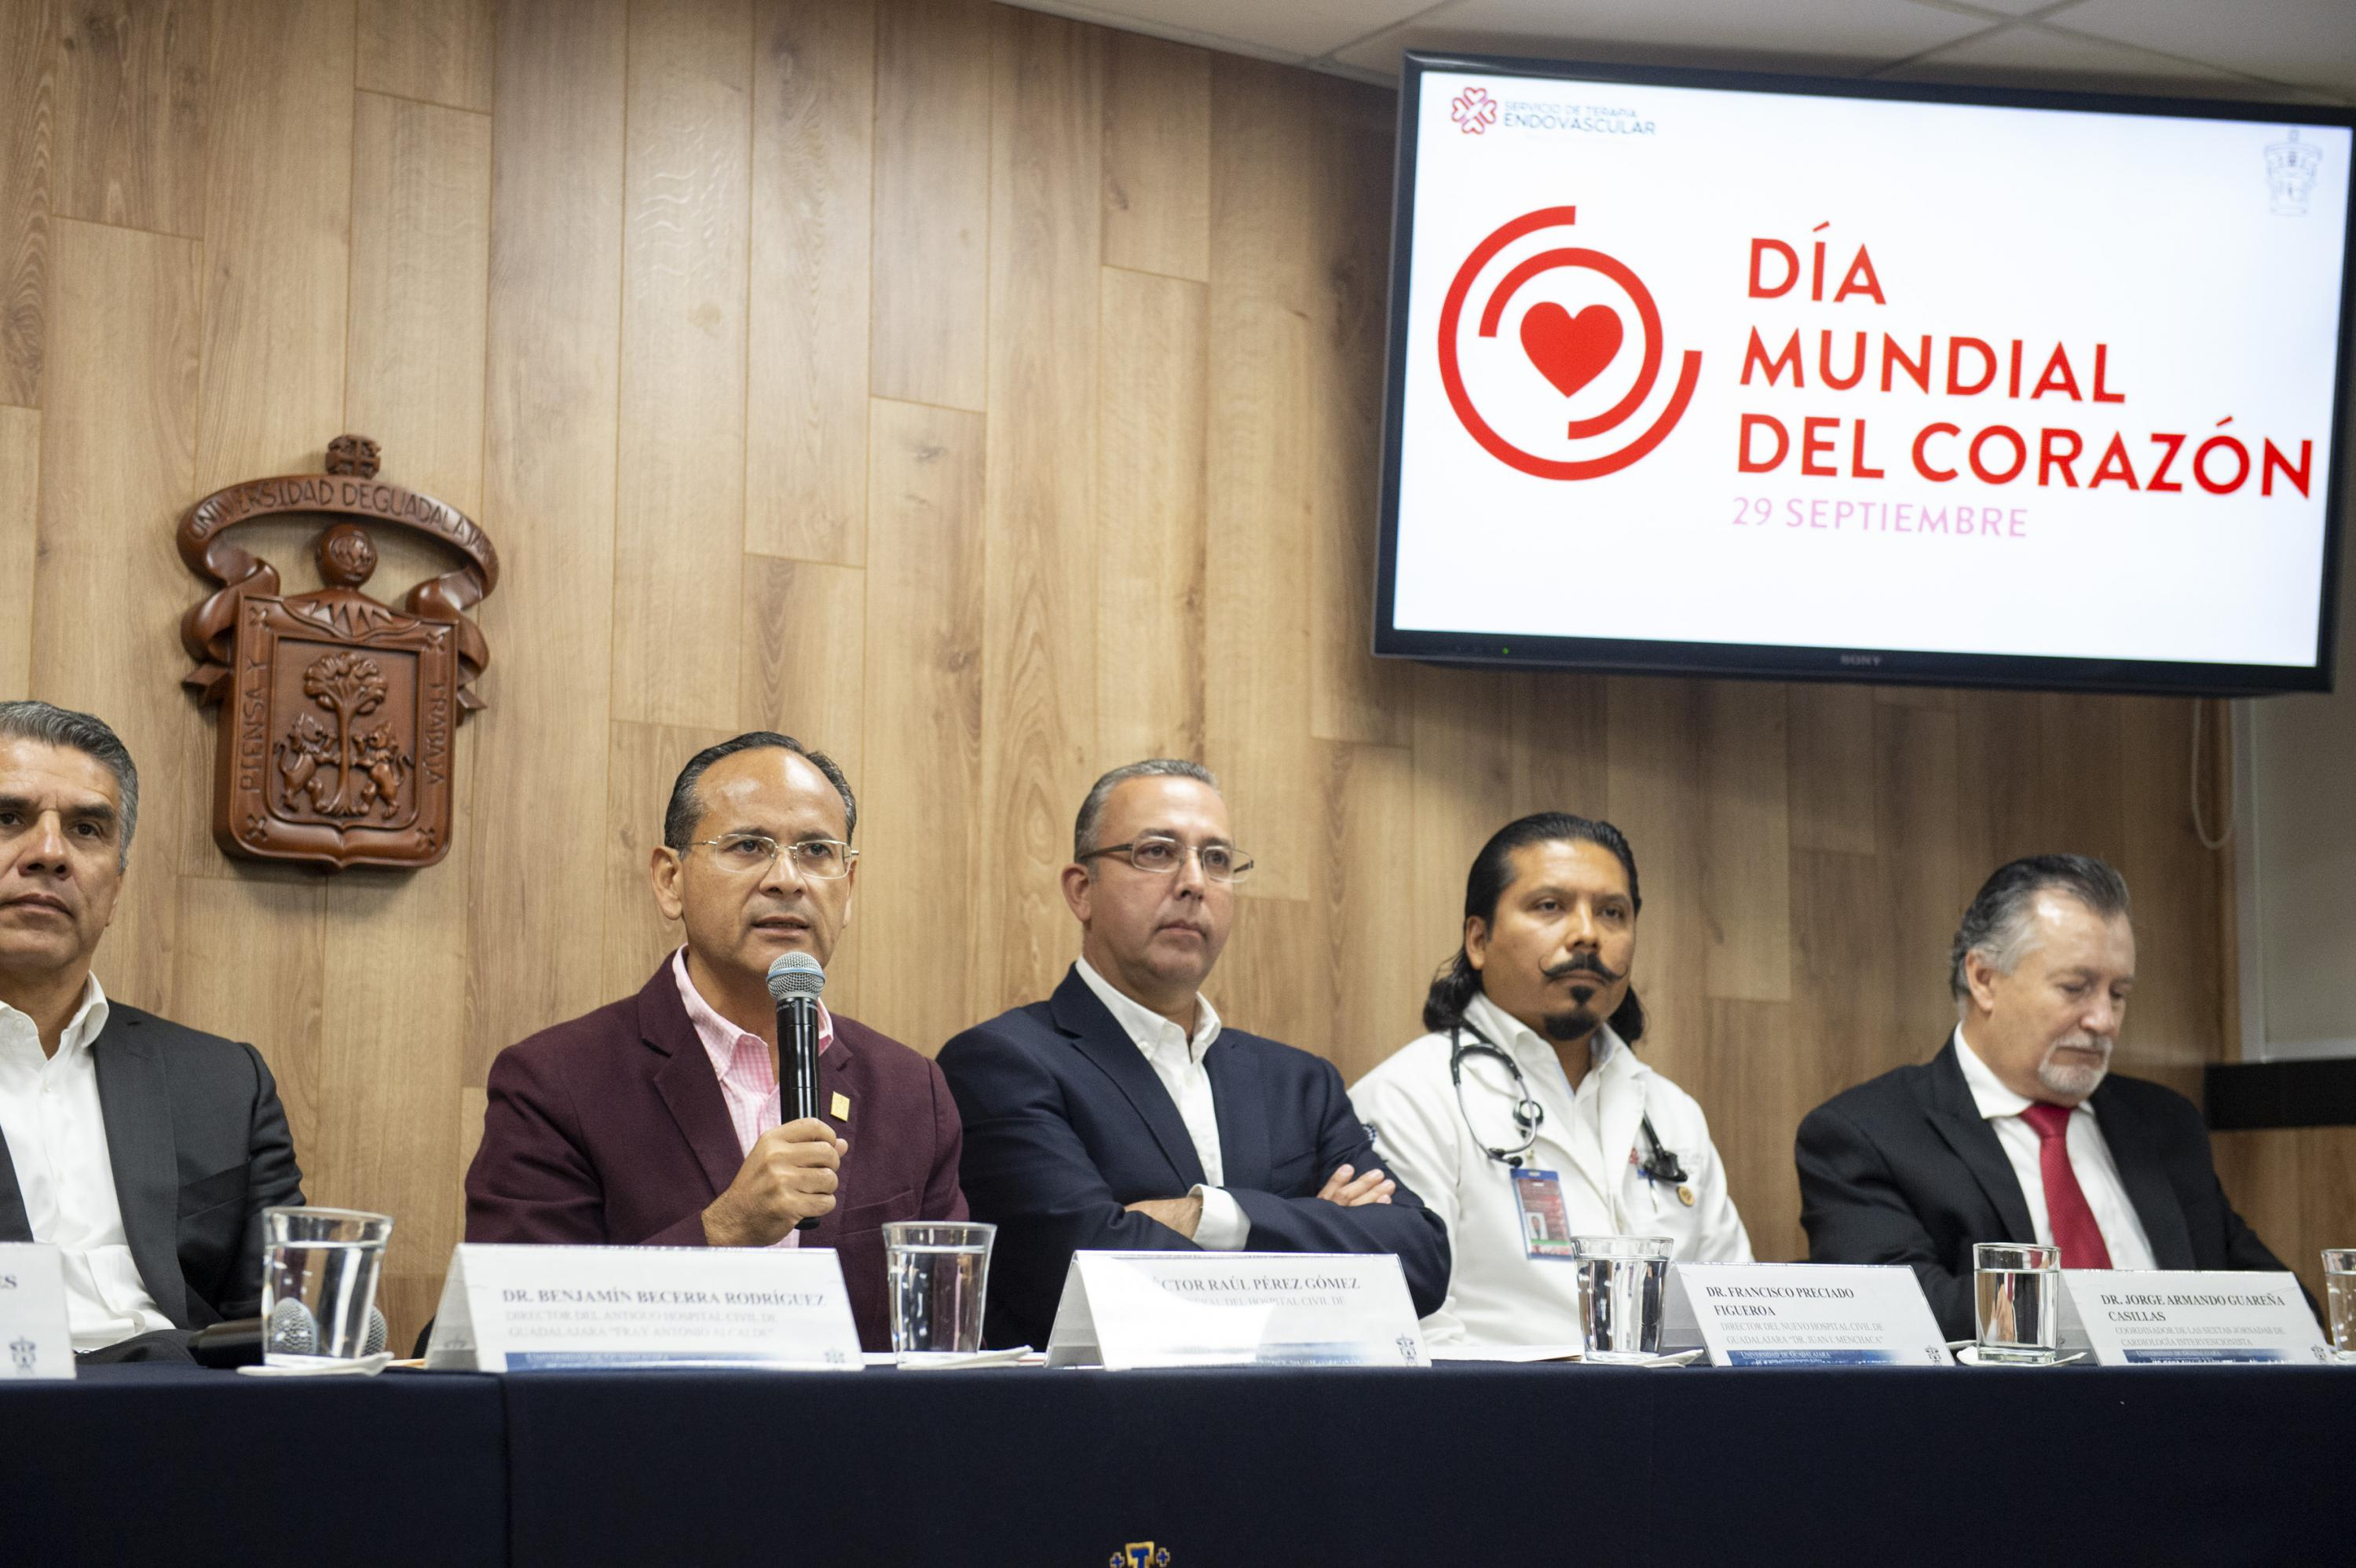 El Director General del OPD Hospital Civil de Guadalajara hablando a los medios presentes